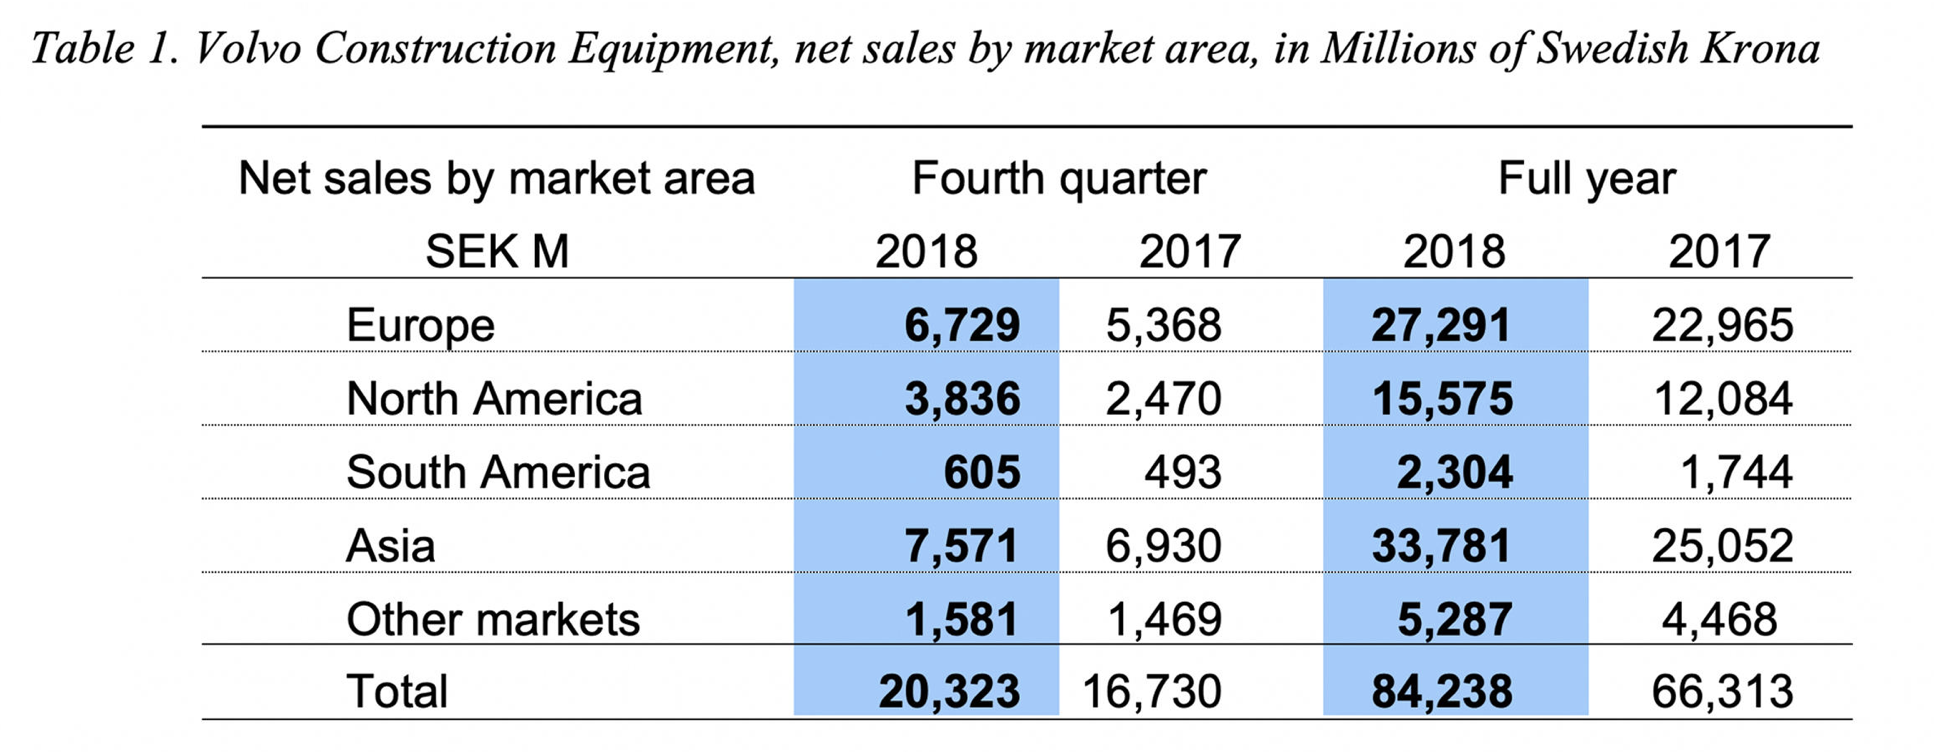 Volvo Construction Equipment Net Sales by Market Area